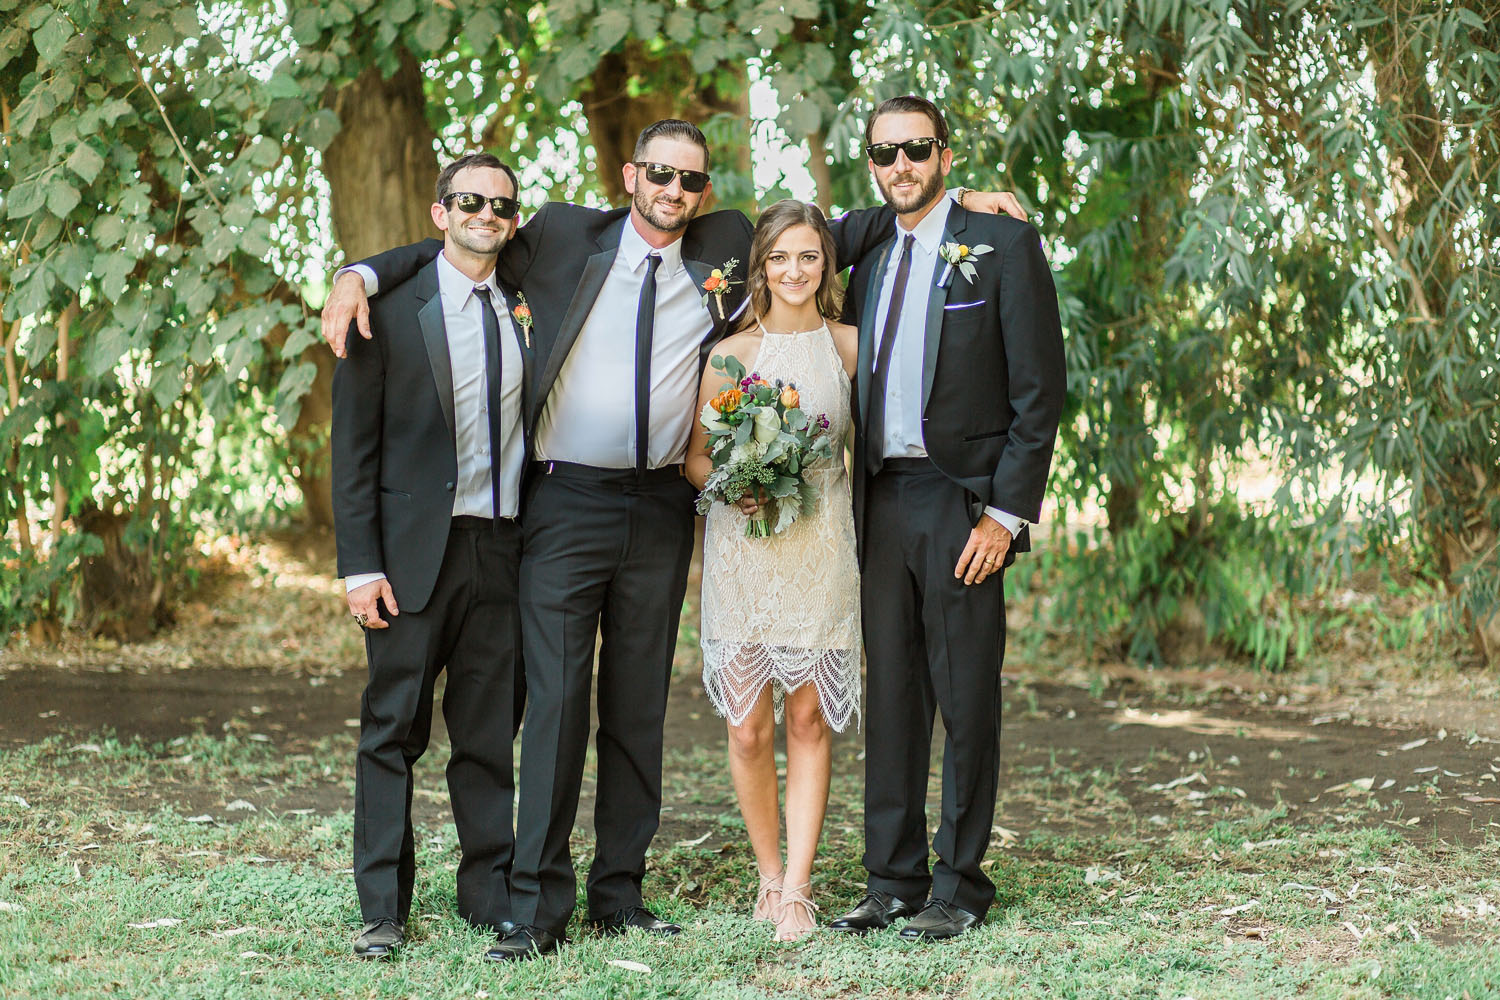 The Photege - Elegant Boho Wedding on Suburu Farm in Bakersfield California- Cassie and Darin Buoni-2999